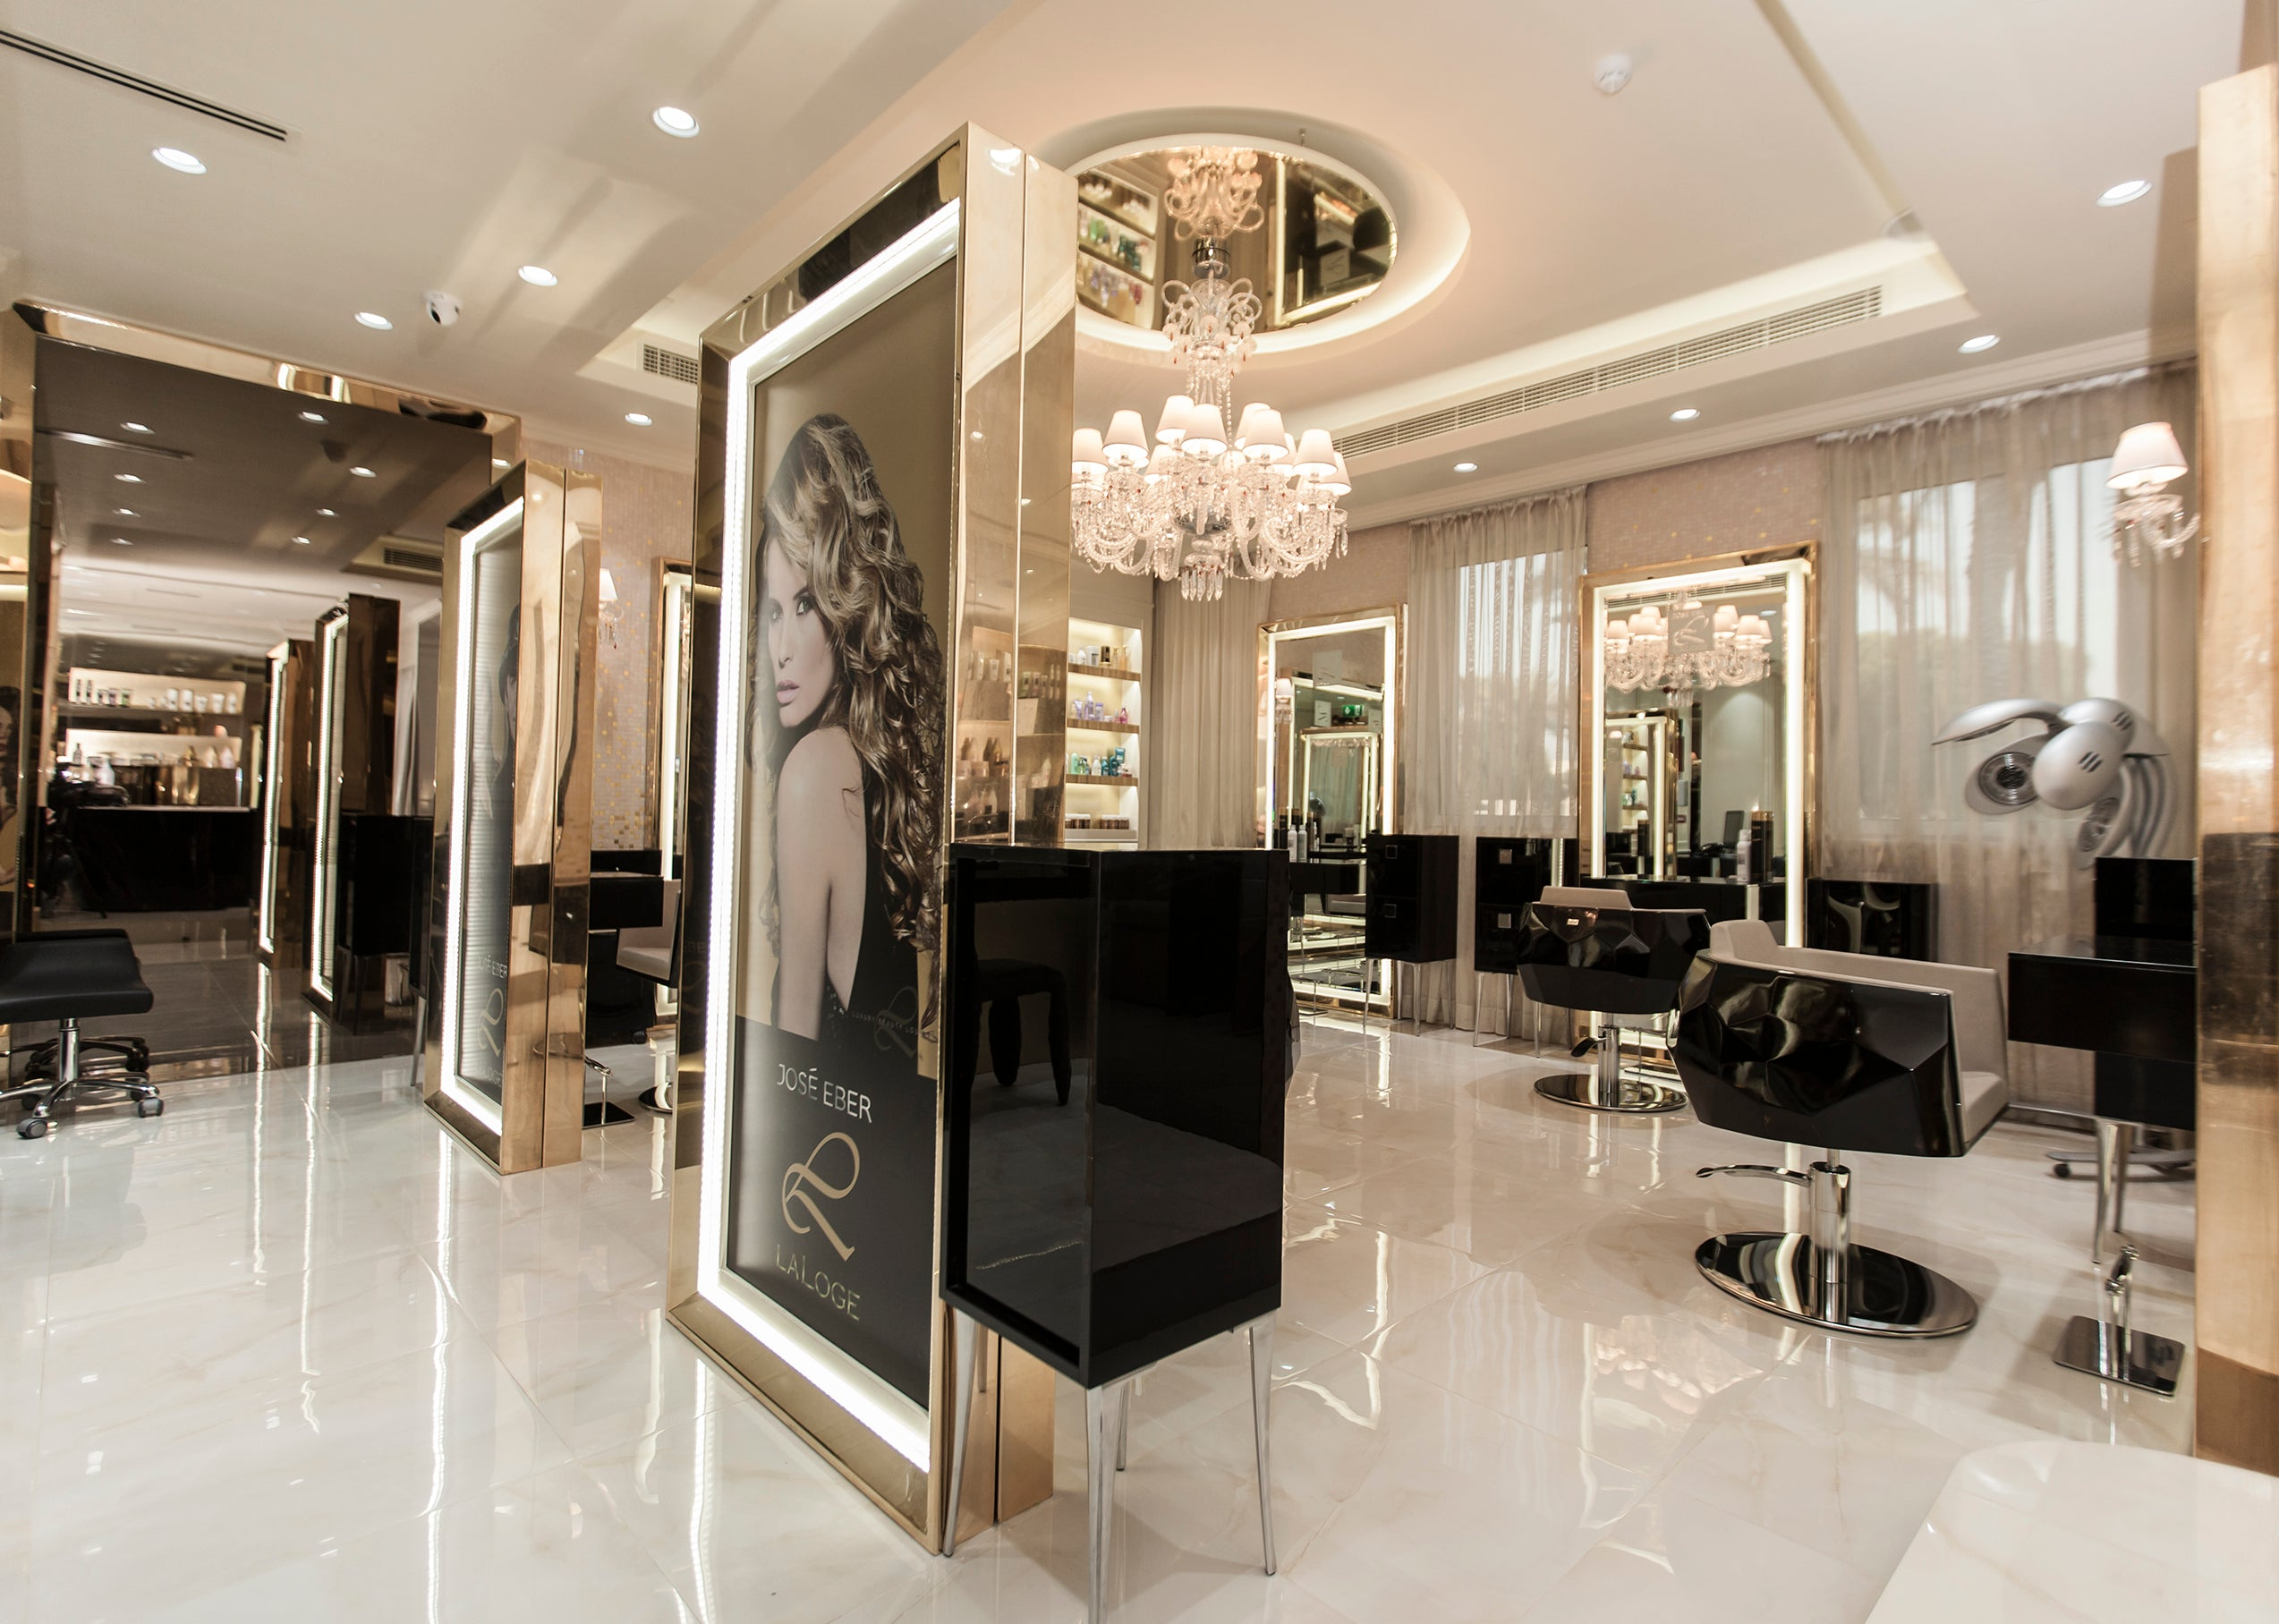 Jose eber hair blog for 7 shades salon dubai